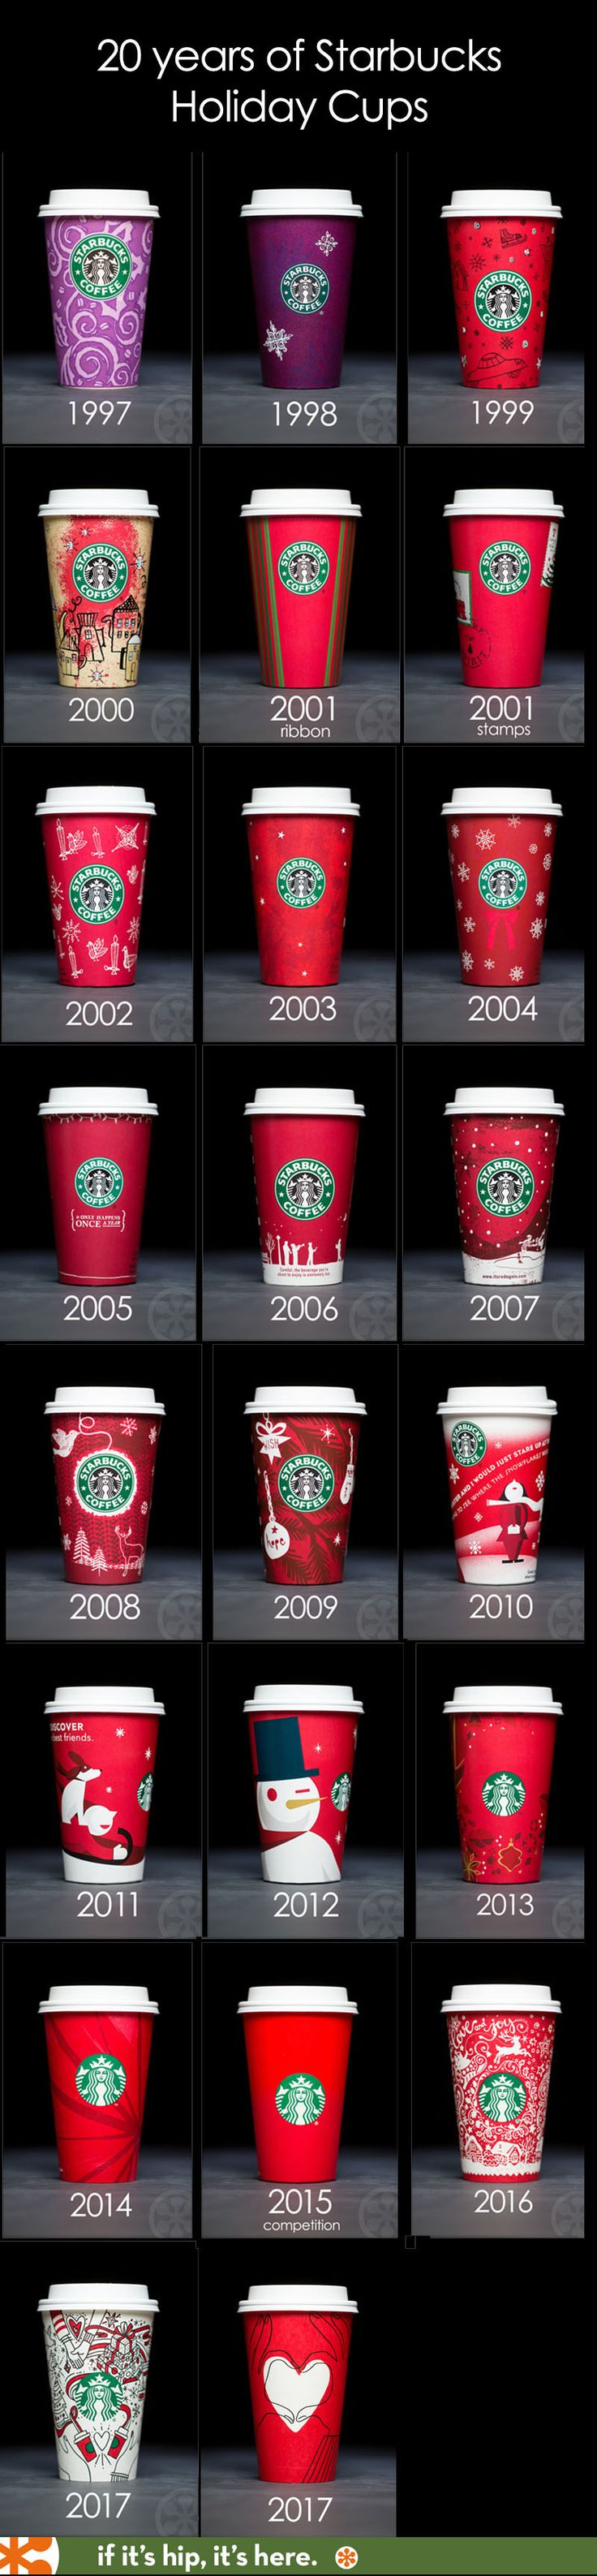 20 Years of Starbucks Holiday Cups, including the 2 new ones for 2017.